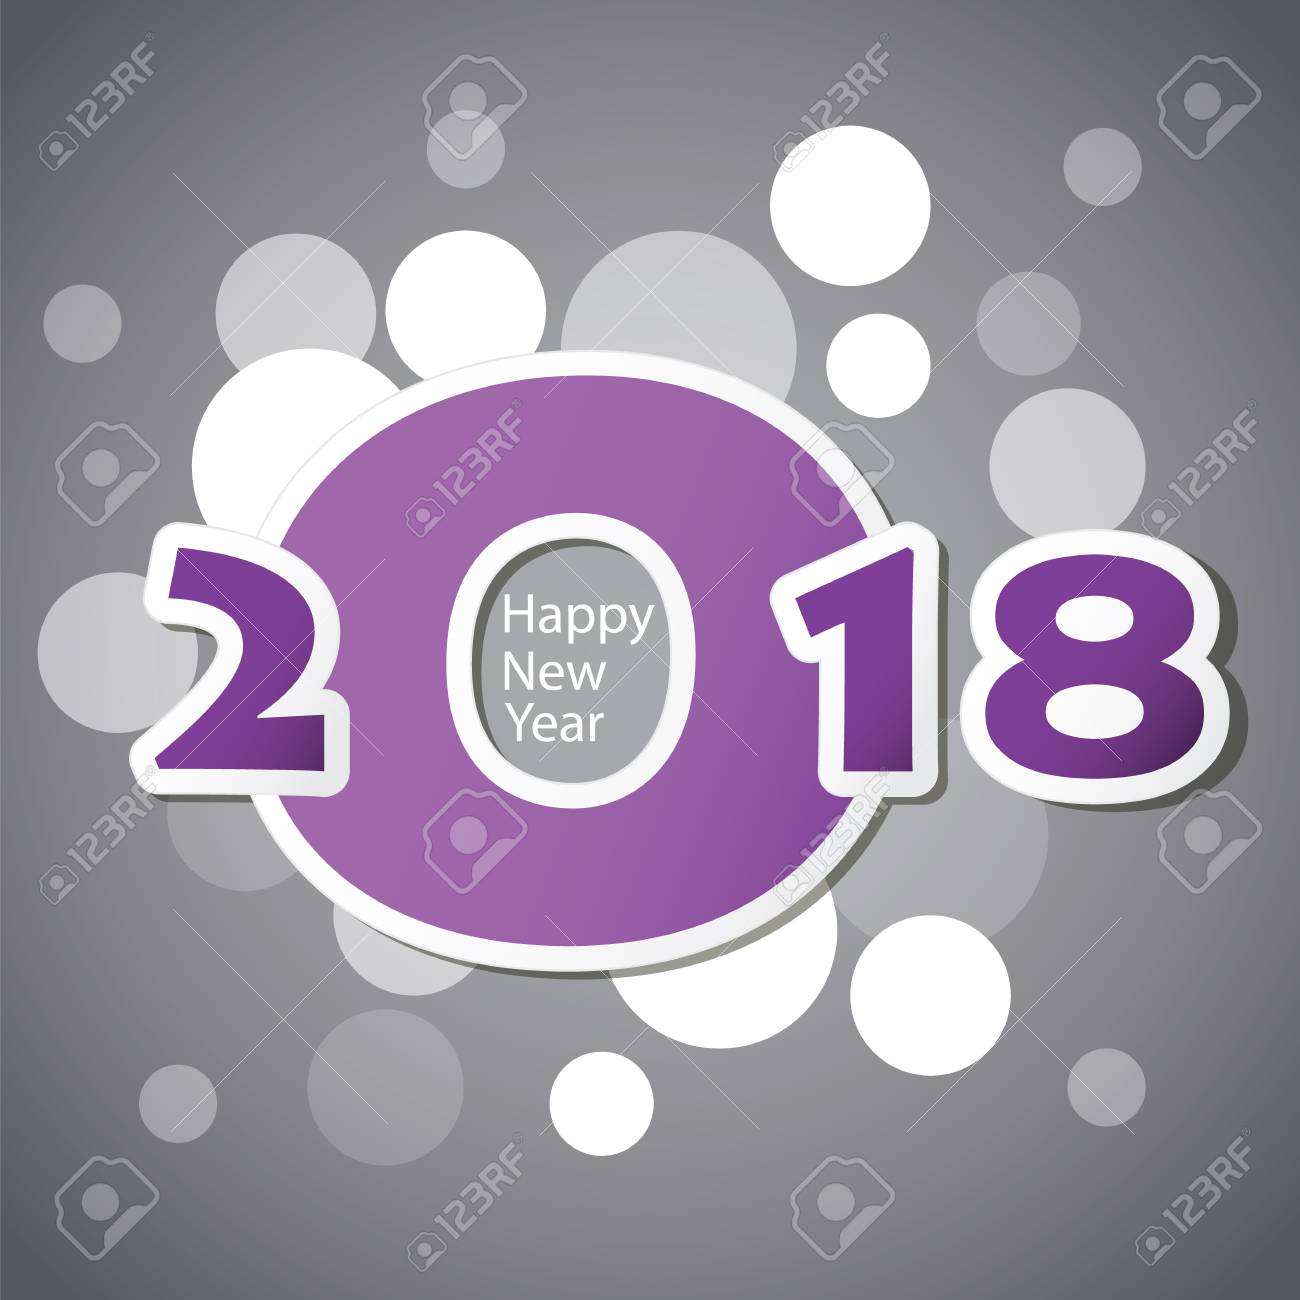 Best wishes abstract modern style happy new year greeting card best wishes abstract modern style happy new year greeting card or background stock vector kristyandbryce Choice Image